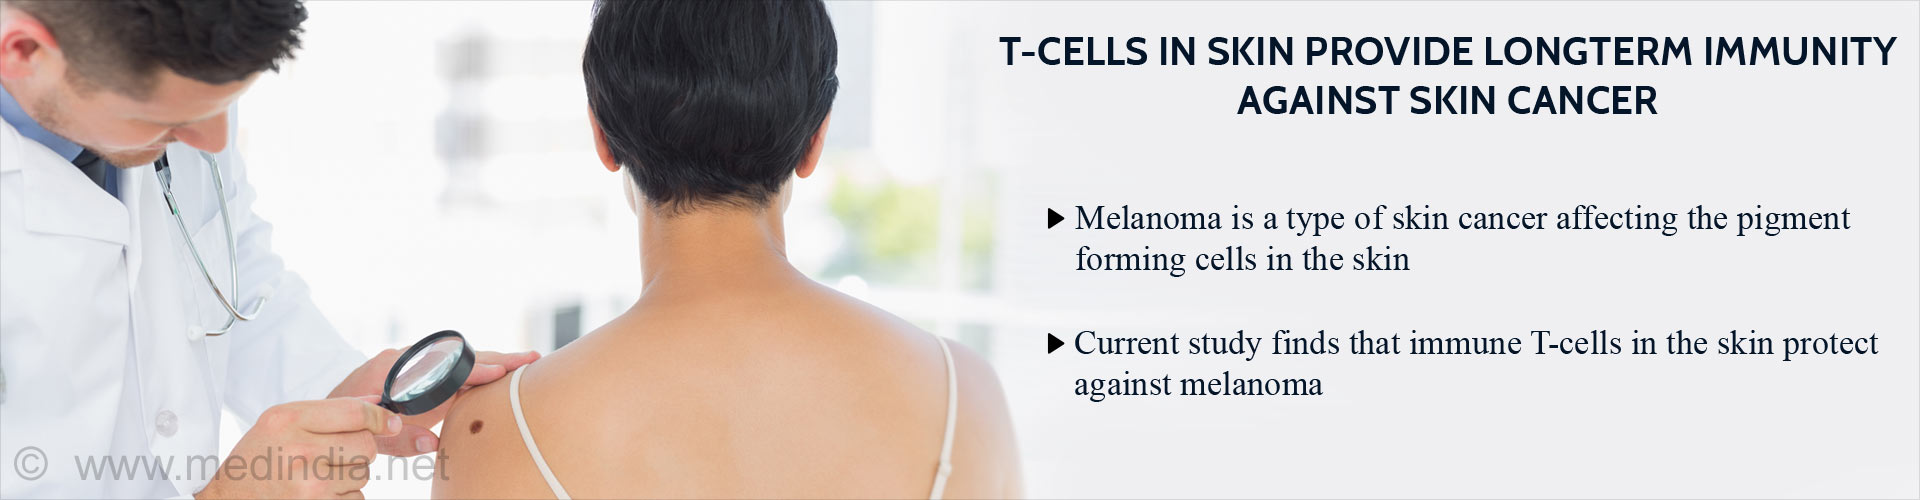 T-cells In Skin Can Kill Melanoma Cells And Prolong Survival